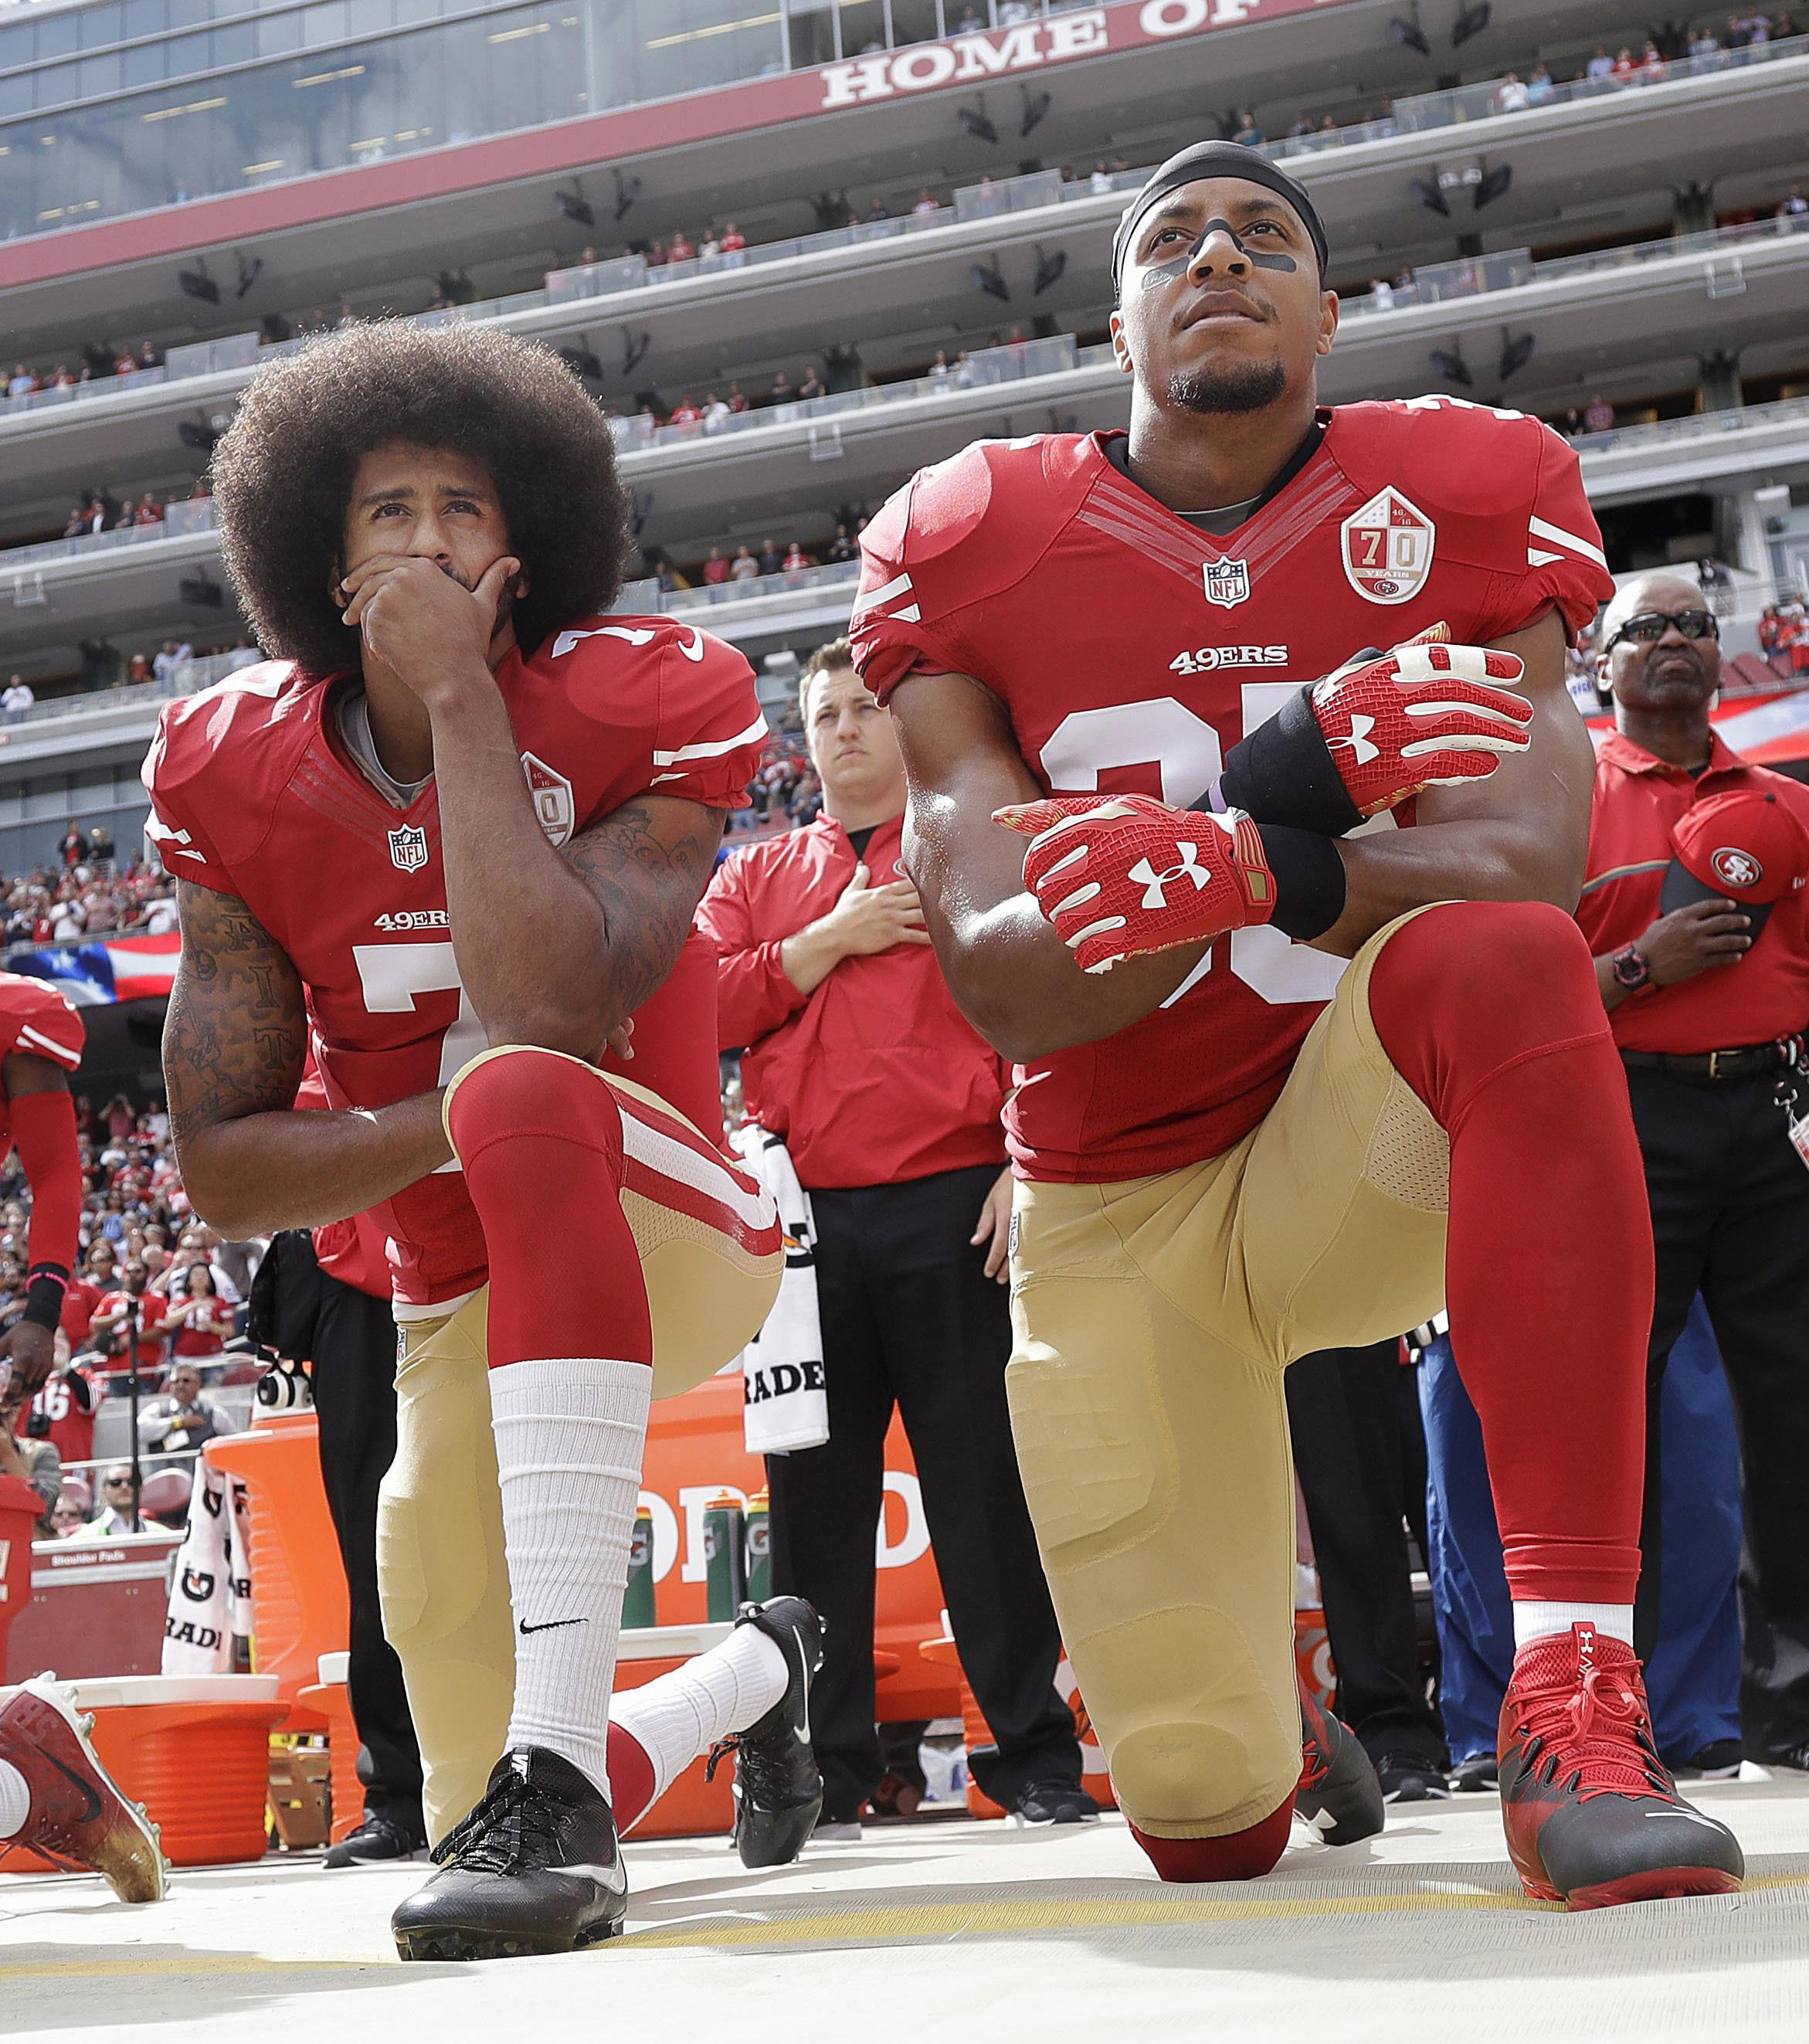 Colin Kaepernick was ousted from the NFL after kneeling in protest during the national anthem